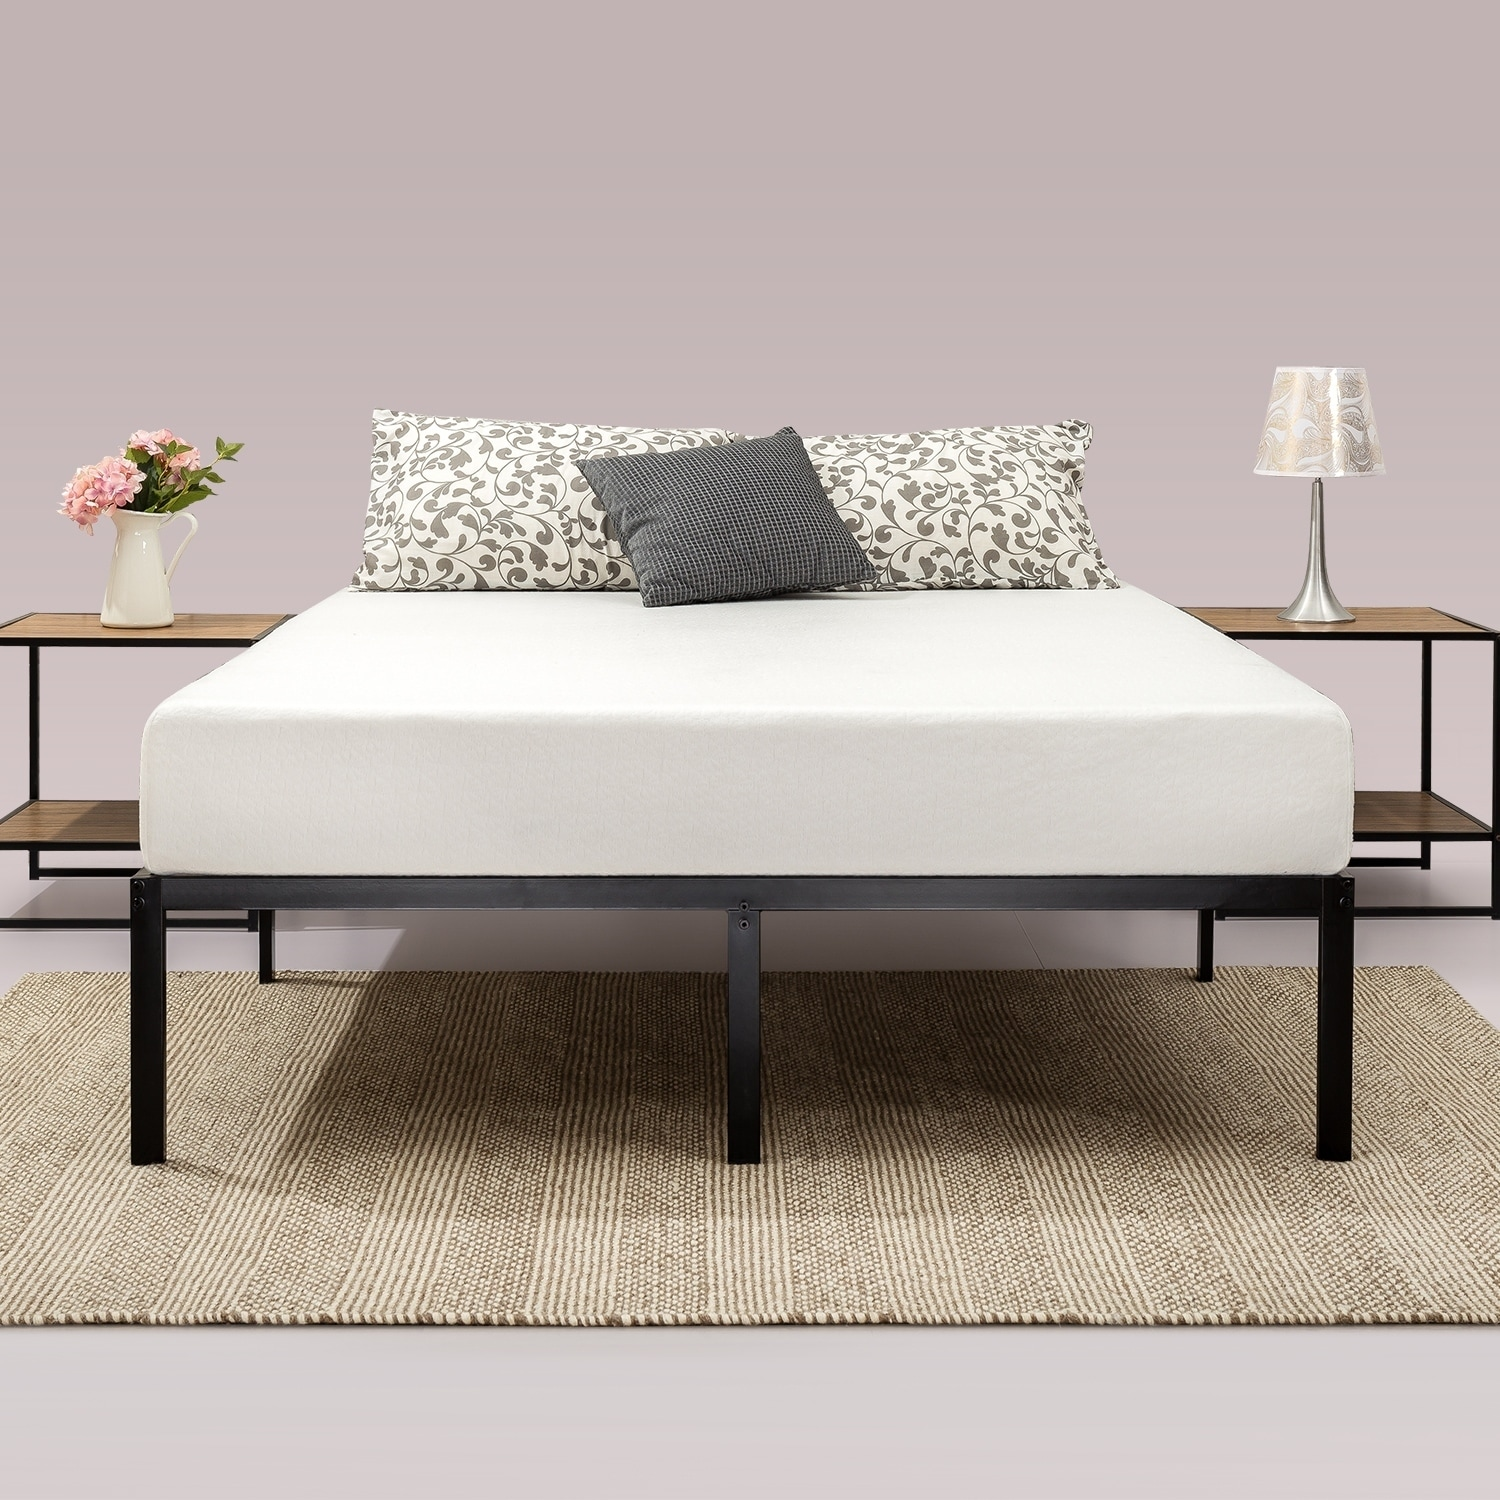 . Priage by Zinus 14 inch Classic Metal Platform Bed Frame